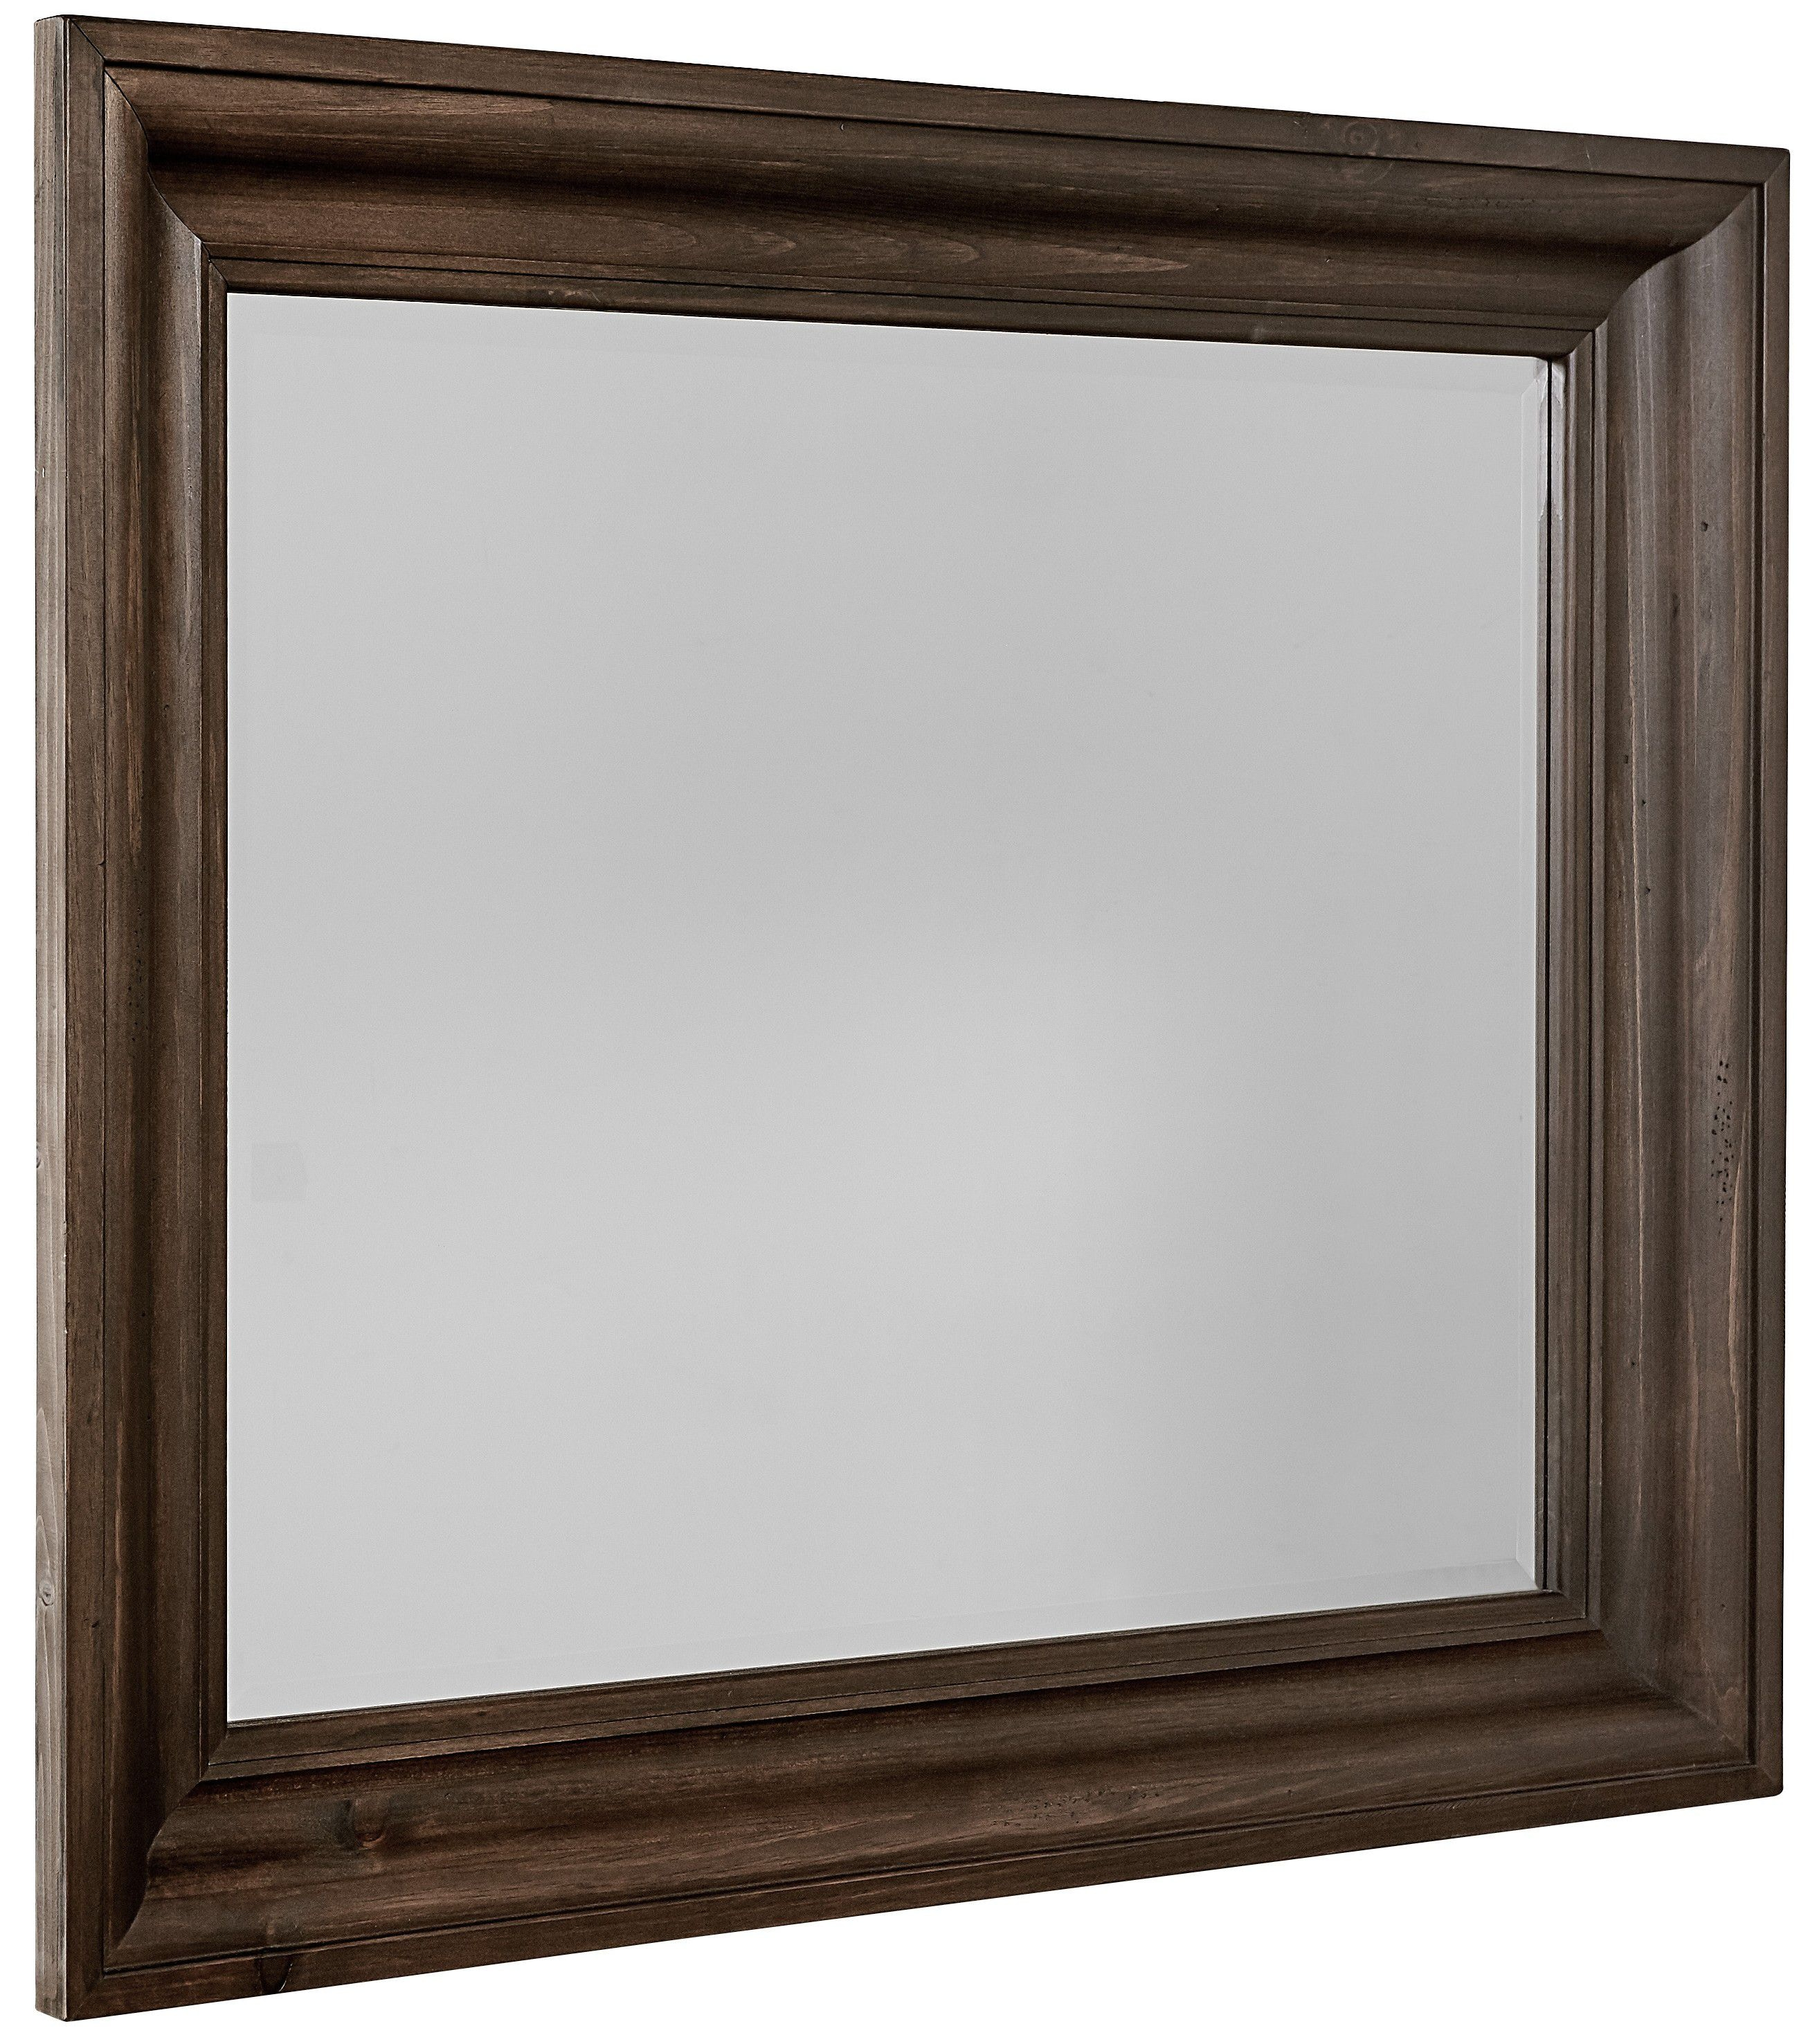 Vaughan Bassett Furniture Company Shadowbox Mirror 680 445